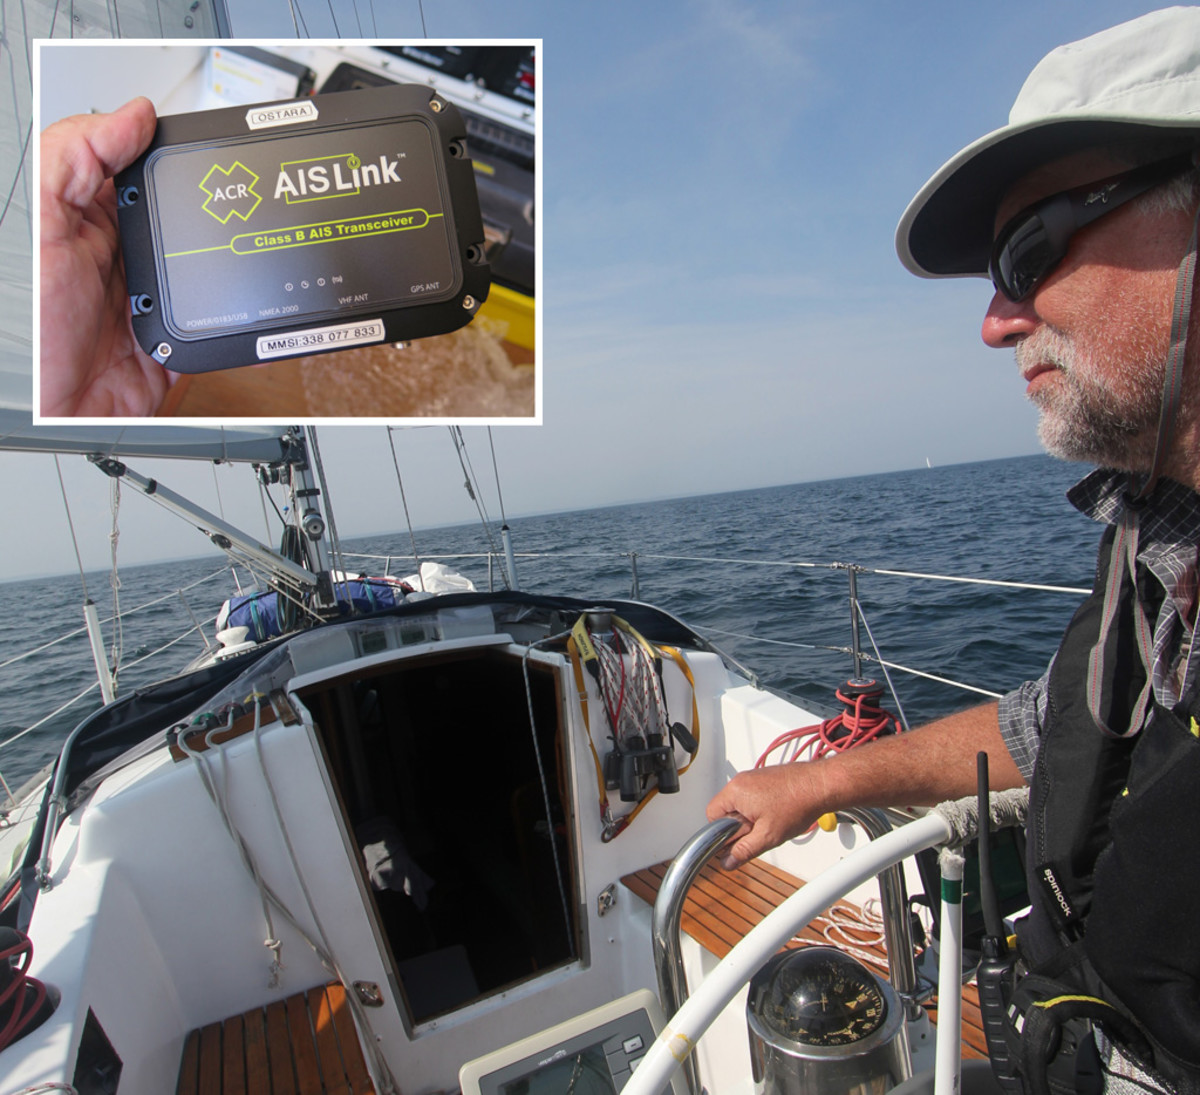 This cruising boat has a Vesper Watchmate AIS display at the helm; an antenna splitter enables the ship's existing VHF antenna to be used